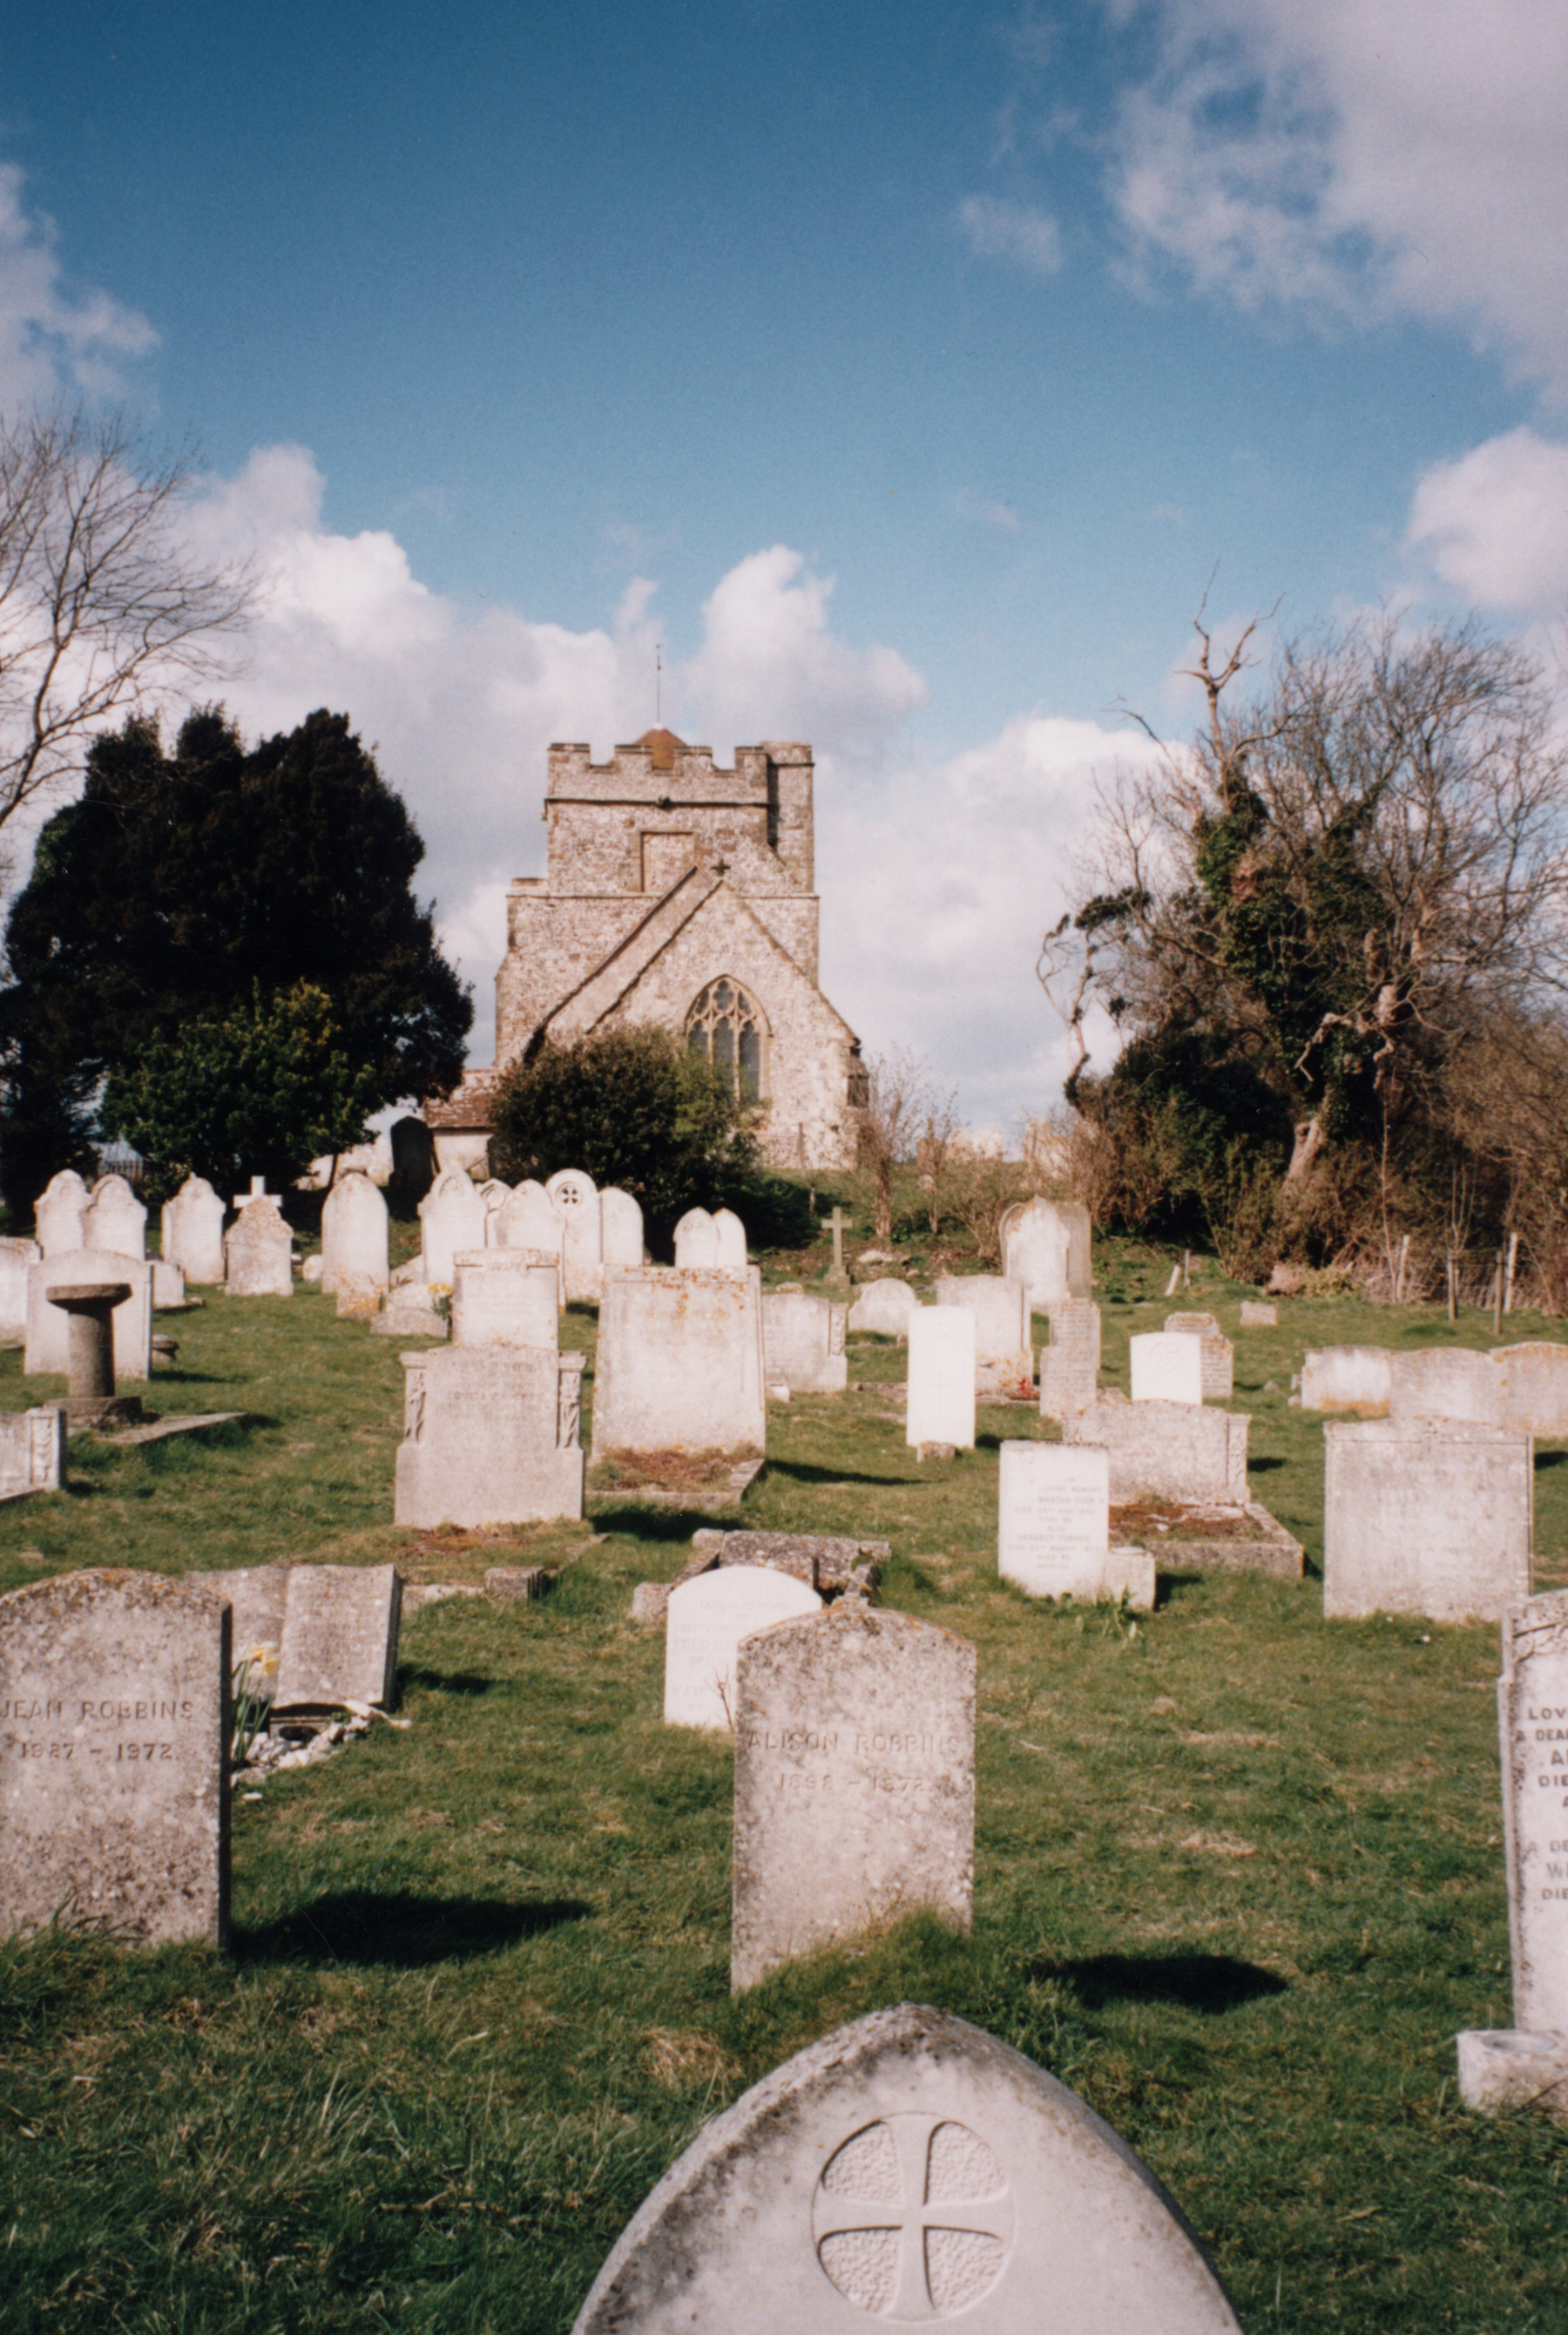 Graveyard looking west taken in 1995 before the Holm oaks grew up obscuring the view of the church from the Ringmer road